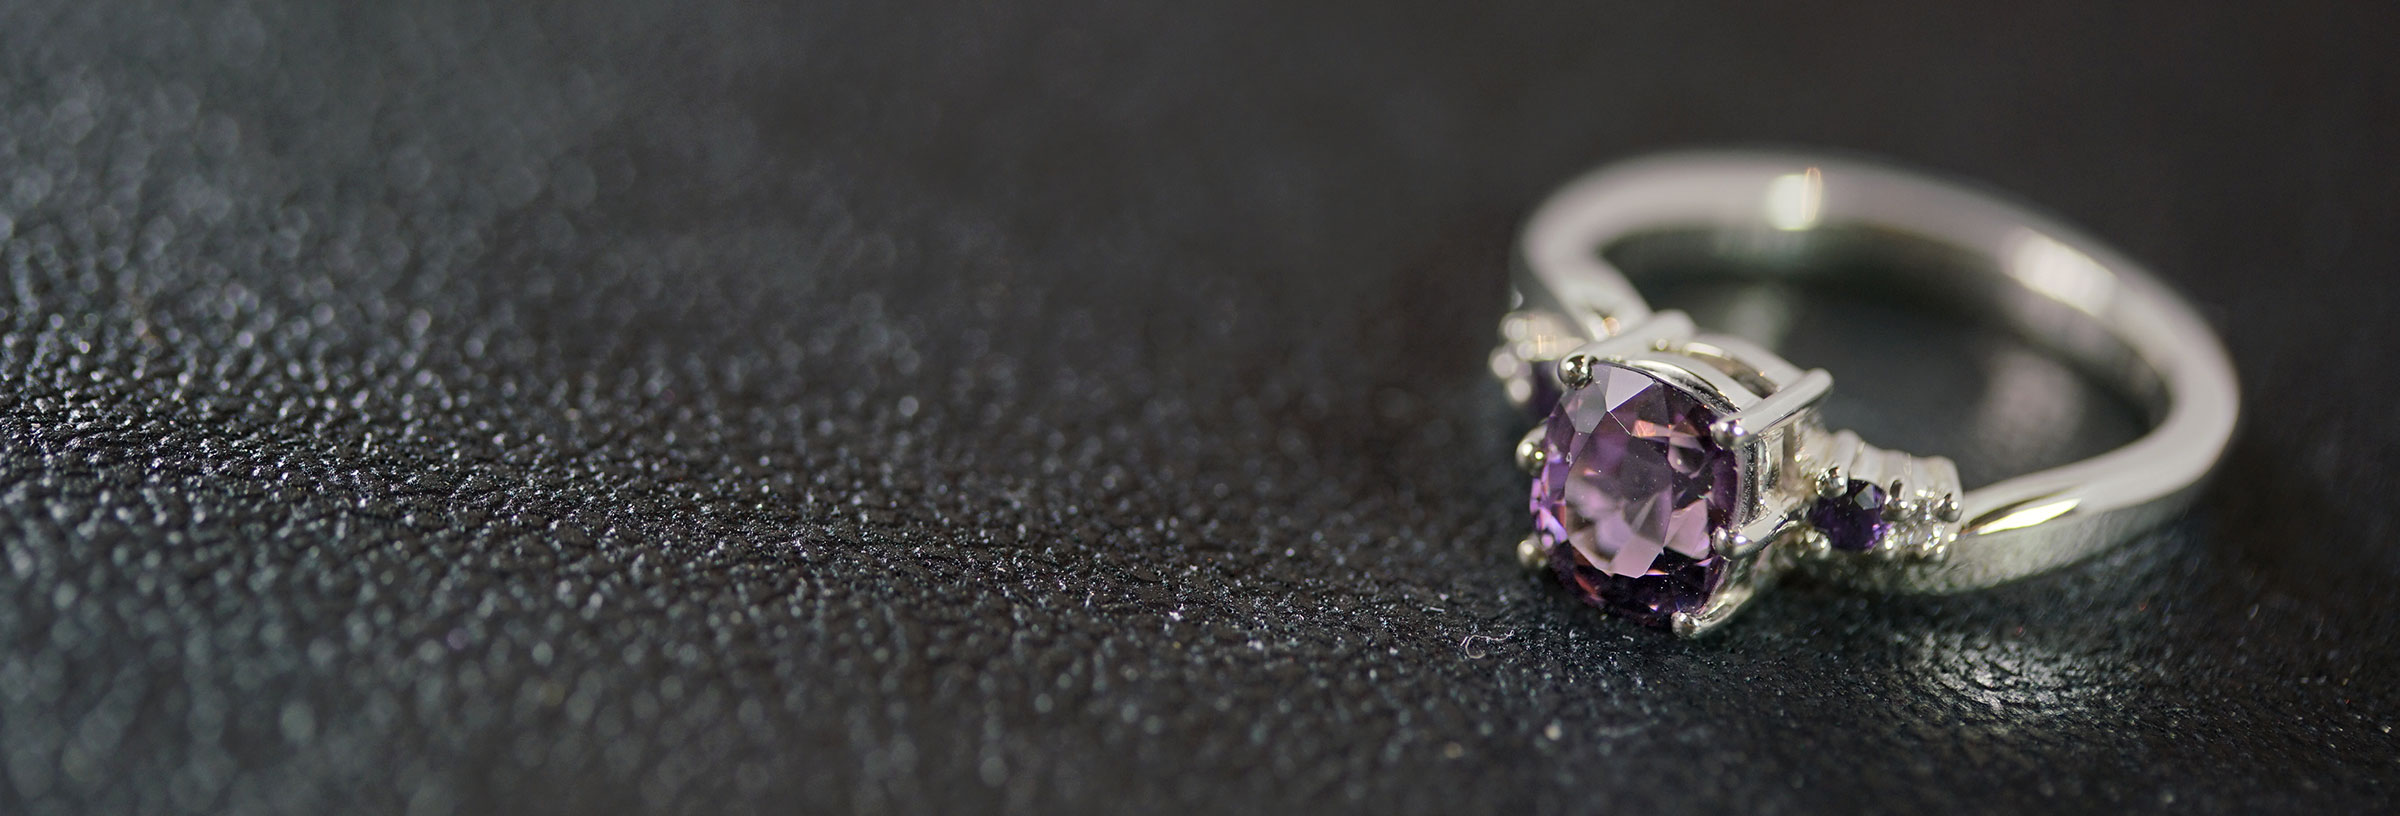 white-gold-sapphire-diamond-and-purple-spinel-engagement-ring